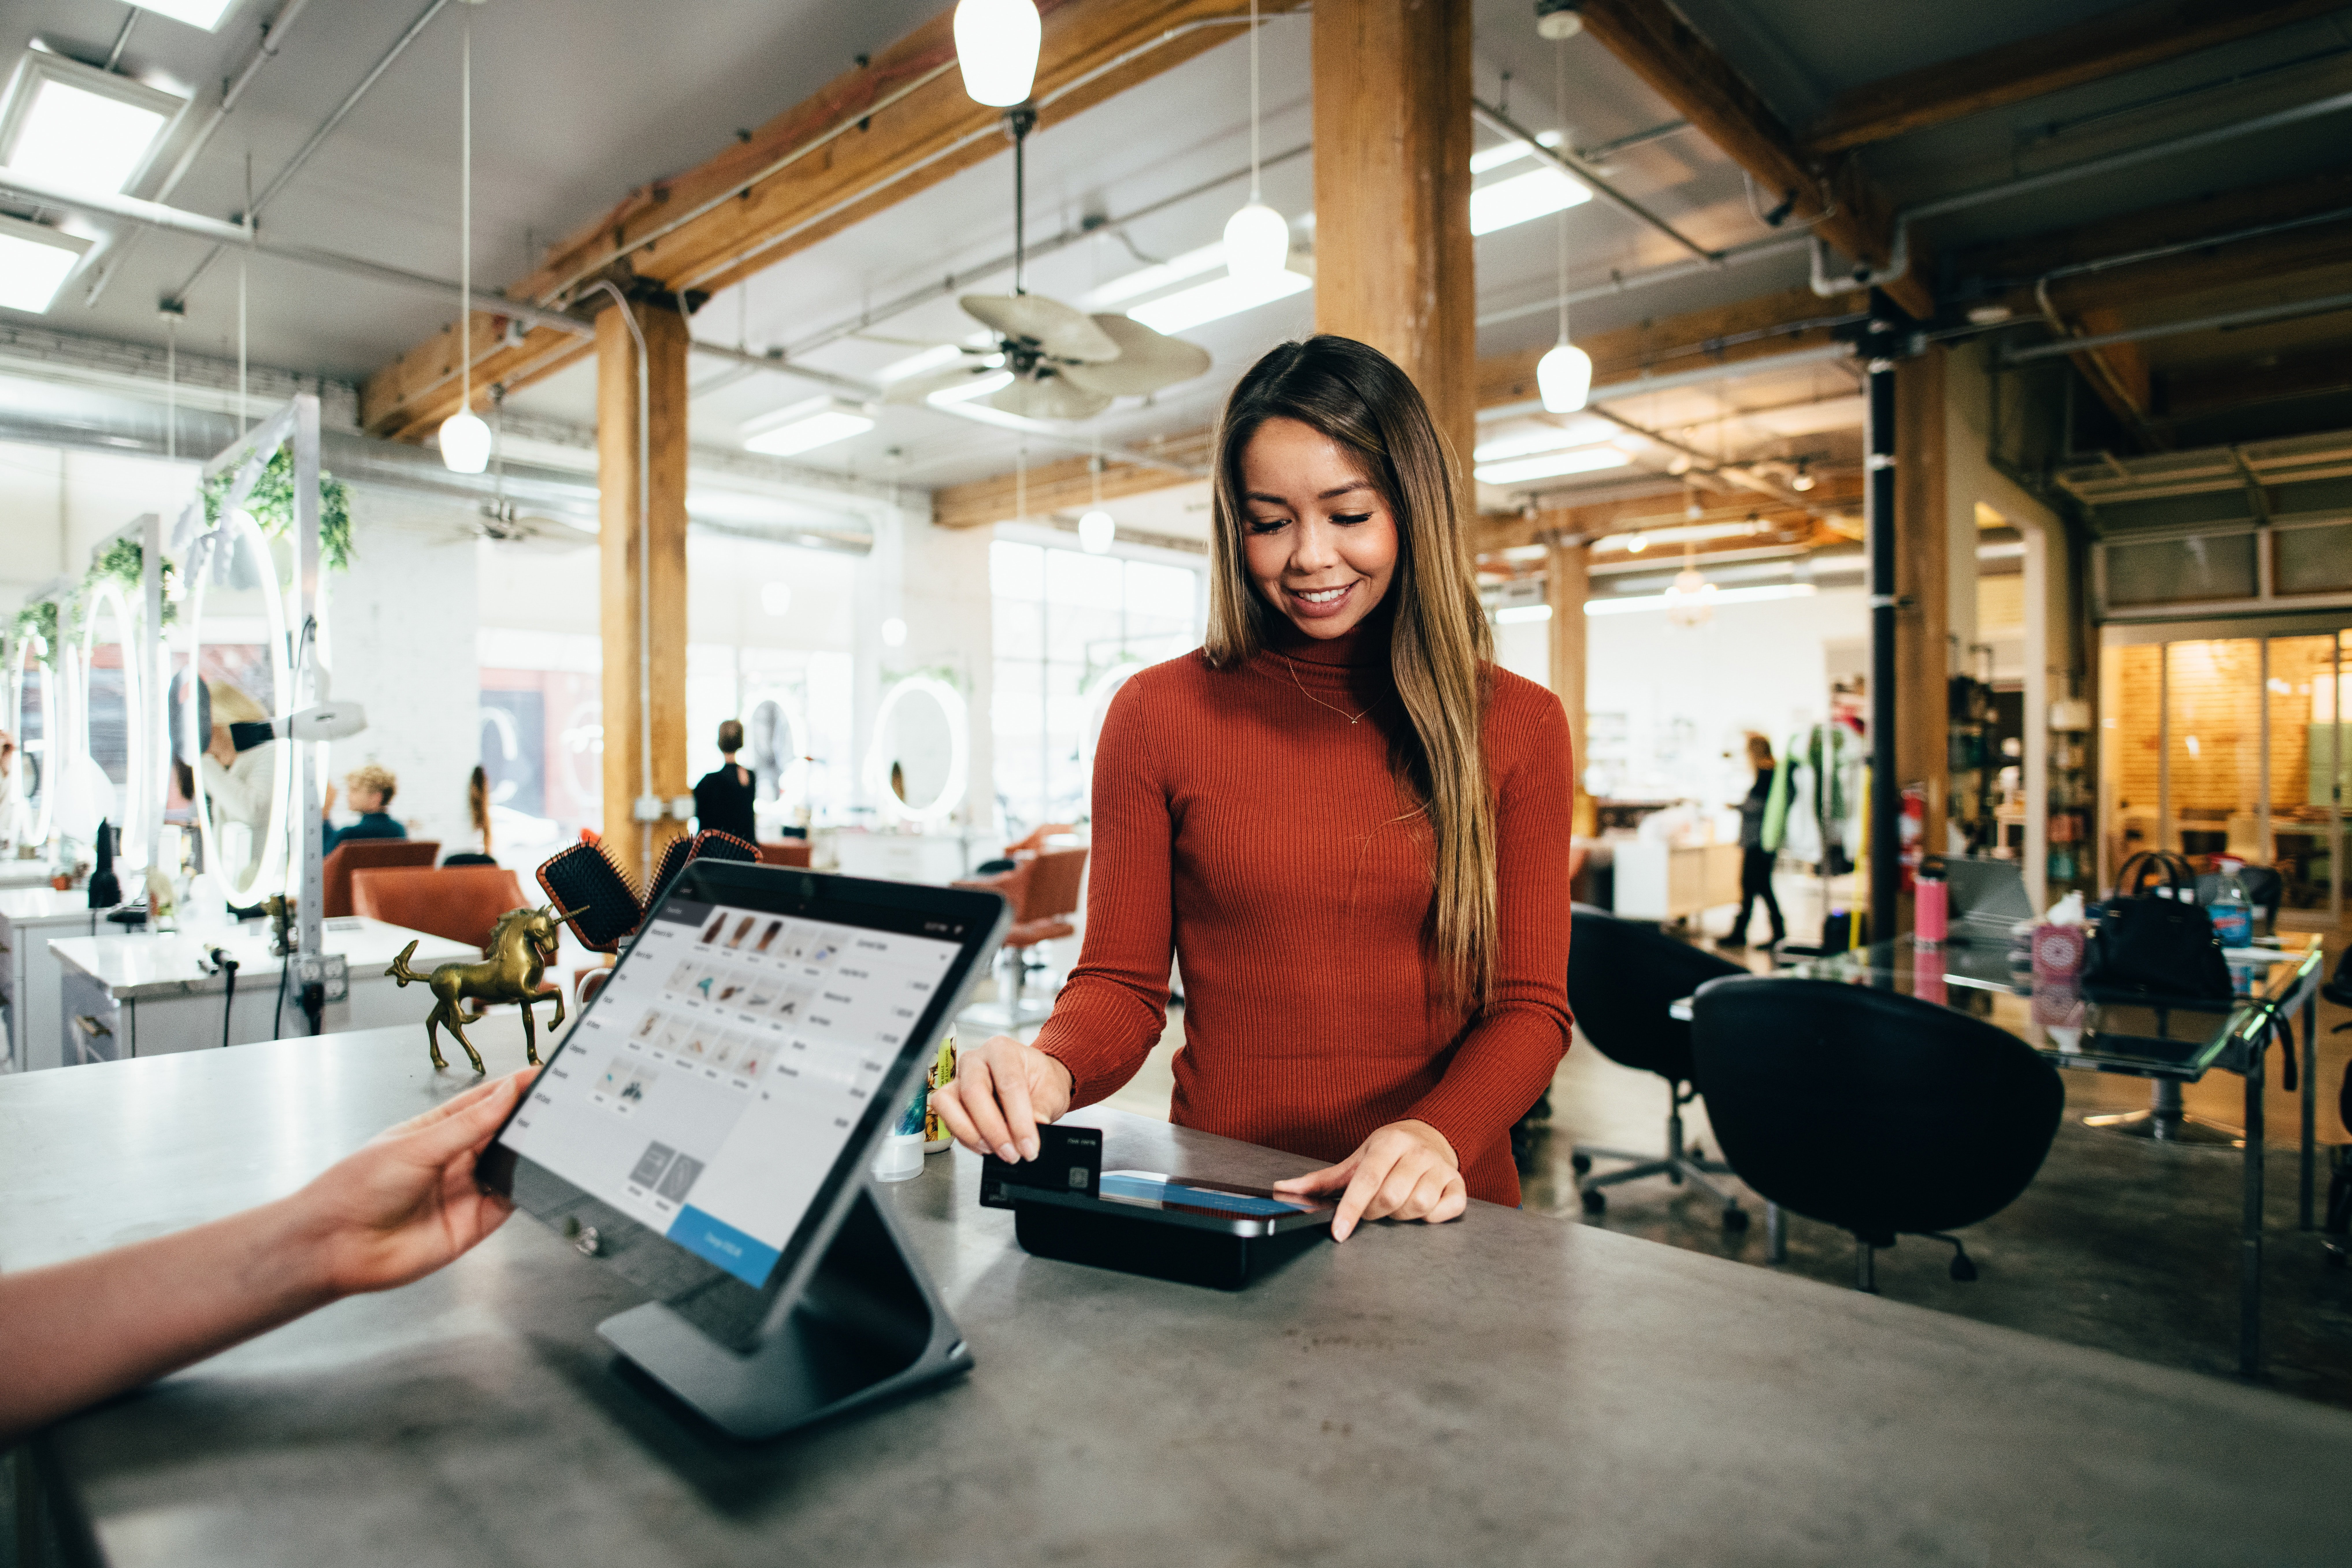 A lady at a counter swiping her card   Source: Unsplash.com